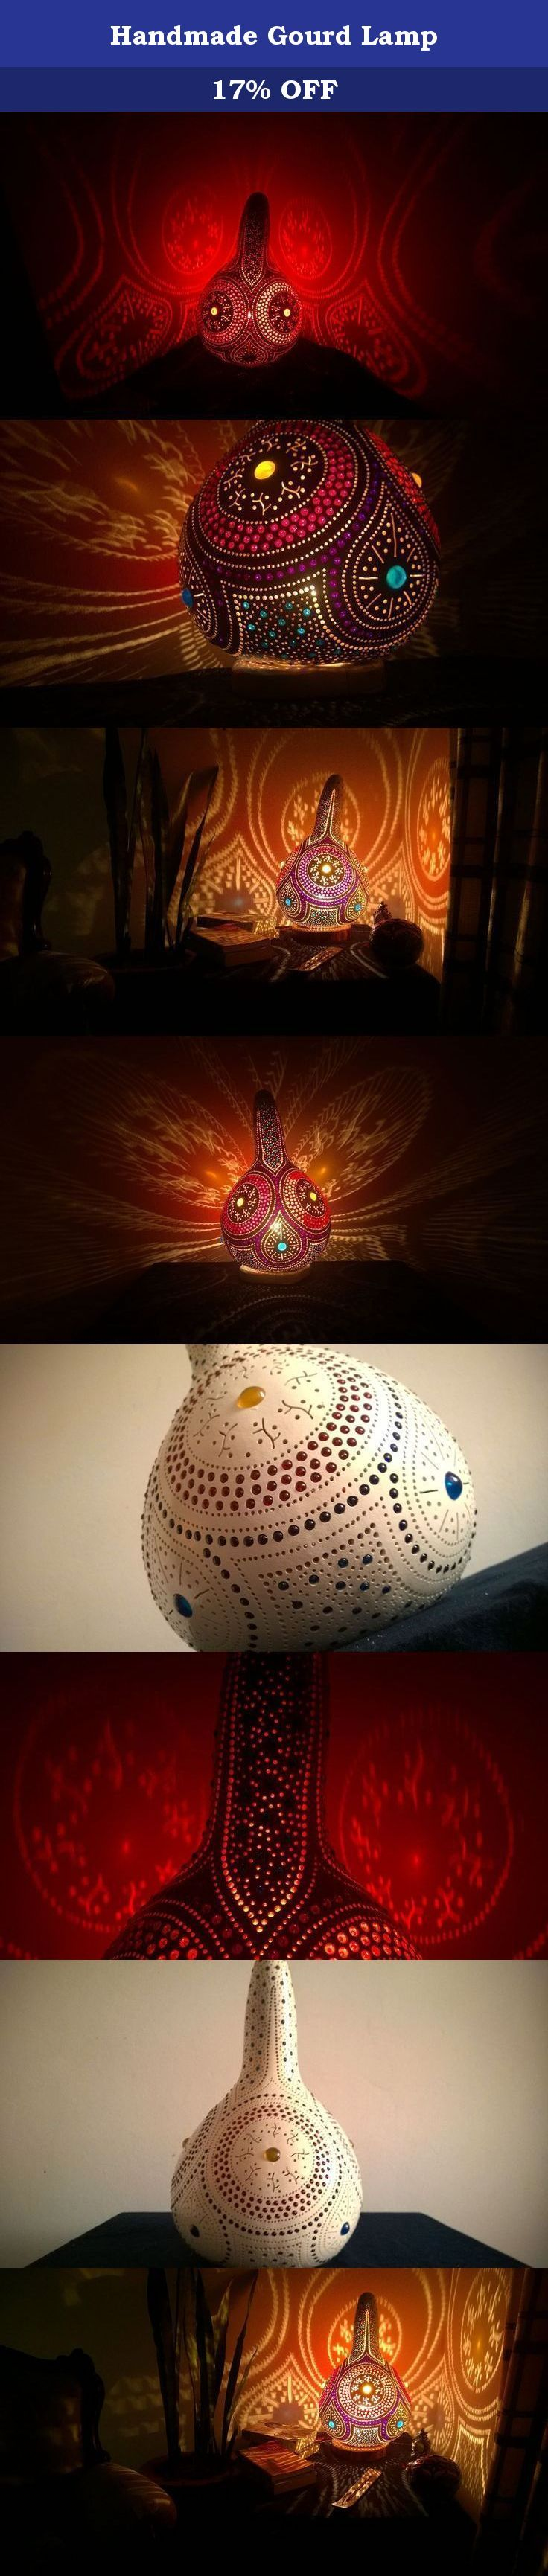 Handmade Gourd Lamp. Welcome. My objective is to send you a unique, truely handmade, authentic product from the Mediterranean with a reasonable cost. So please read the next three pharagraphs carefully before making a decision. I work with selected farmers who water calabash excessively (the main material) and feed them with goat based fertilisers so that they grow up strong and thick. But when it comes to shipping, they are delicate, fragile and sensitive. I warranty a free replacement…